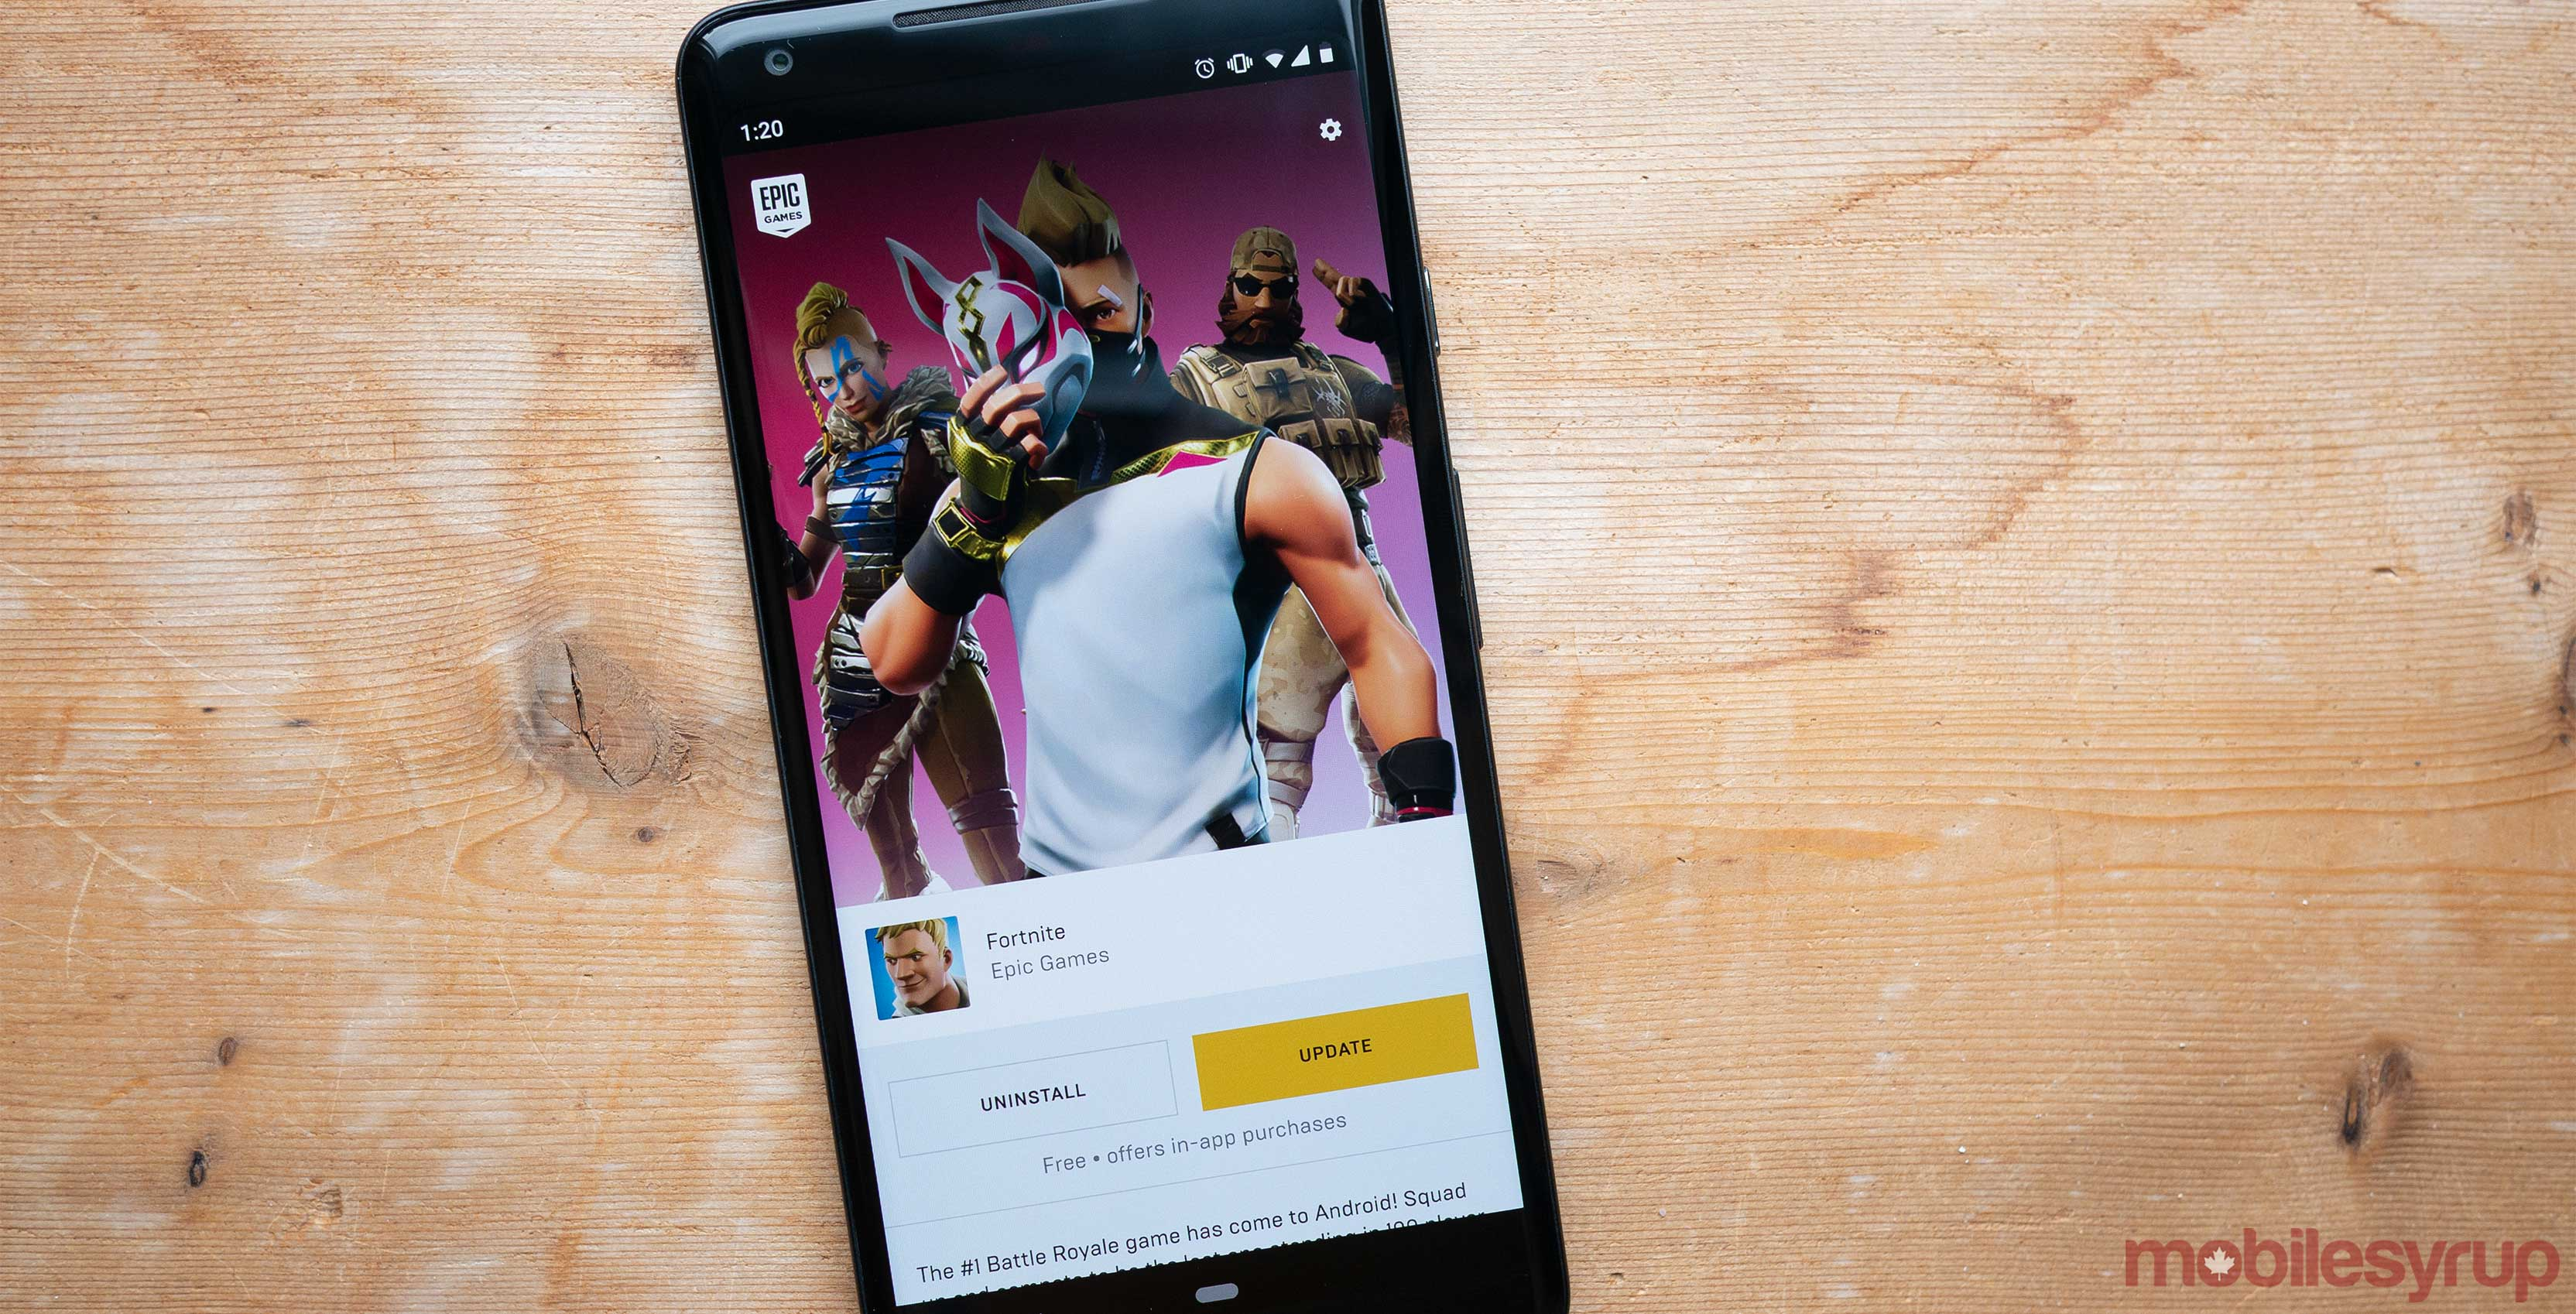 Fortnite's initial Android installer could have allowed